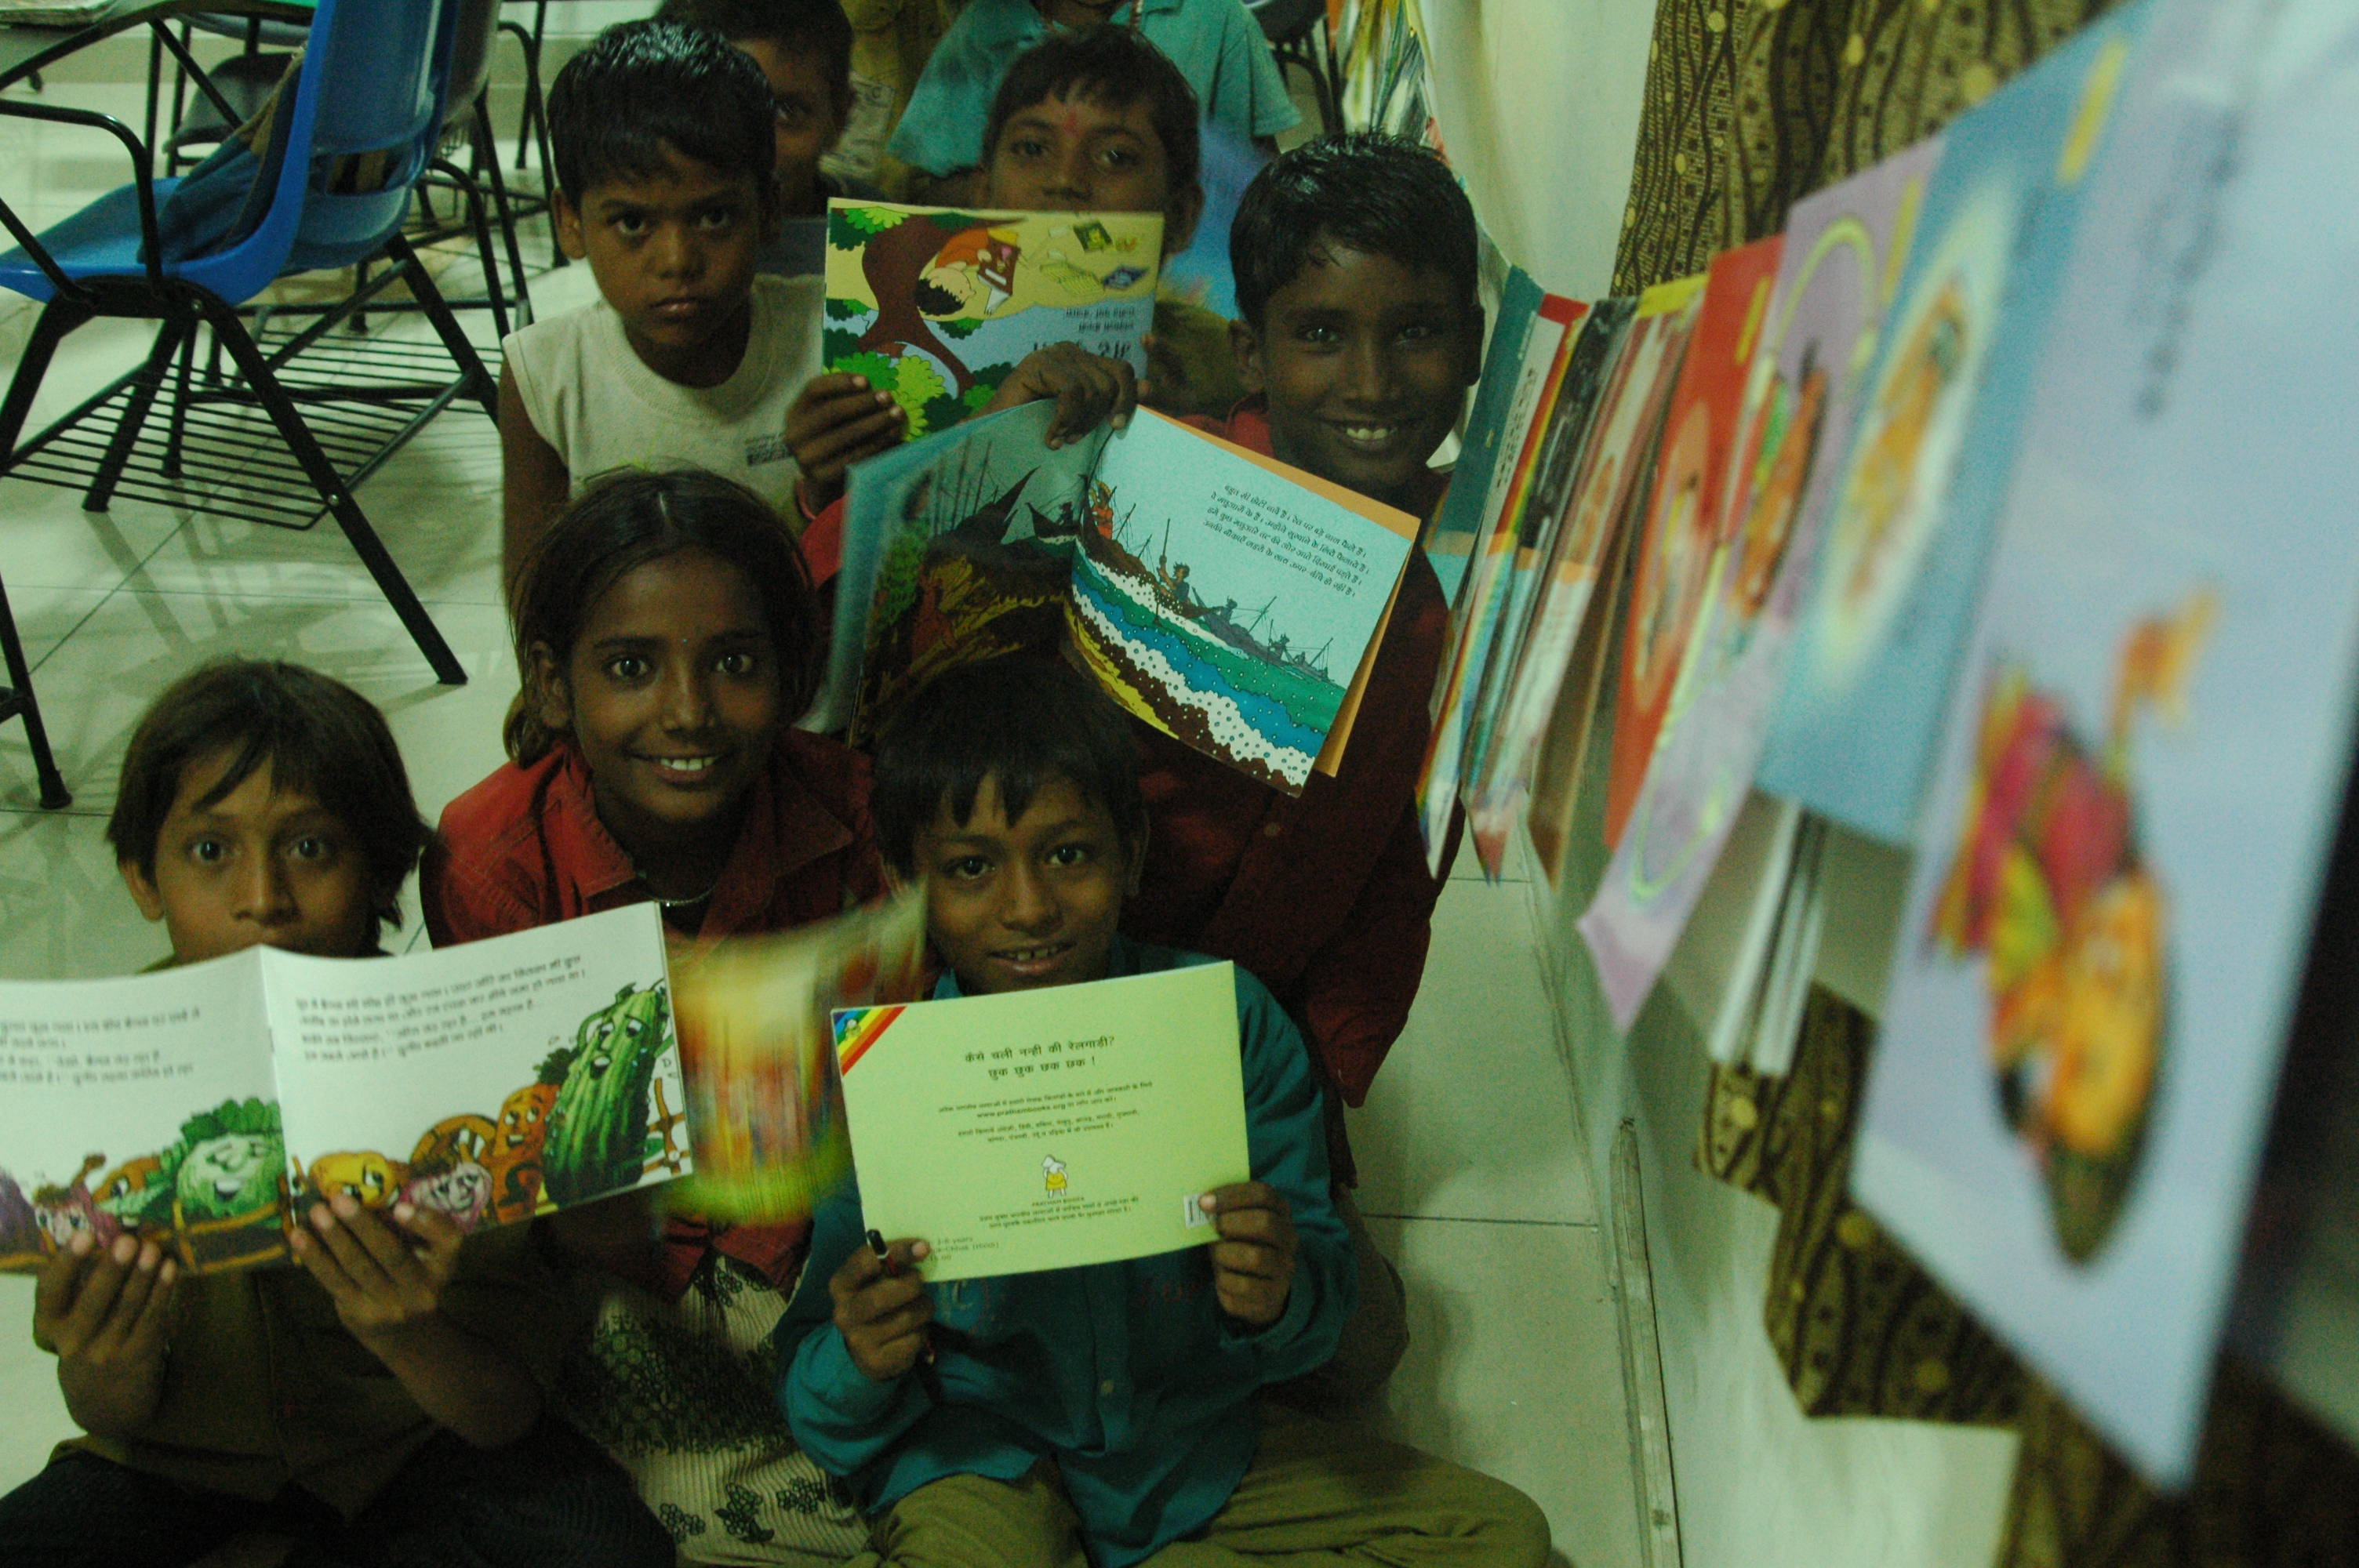 Delighted to have story books, SEE, IWSB, Greater Noida, UP, India